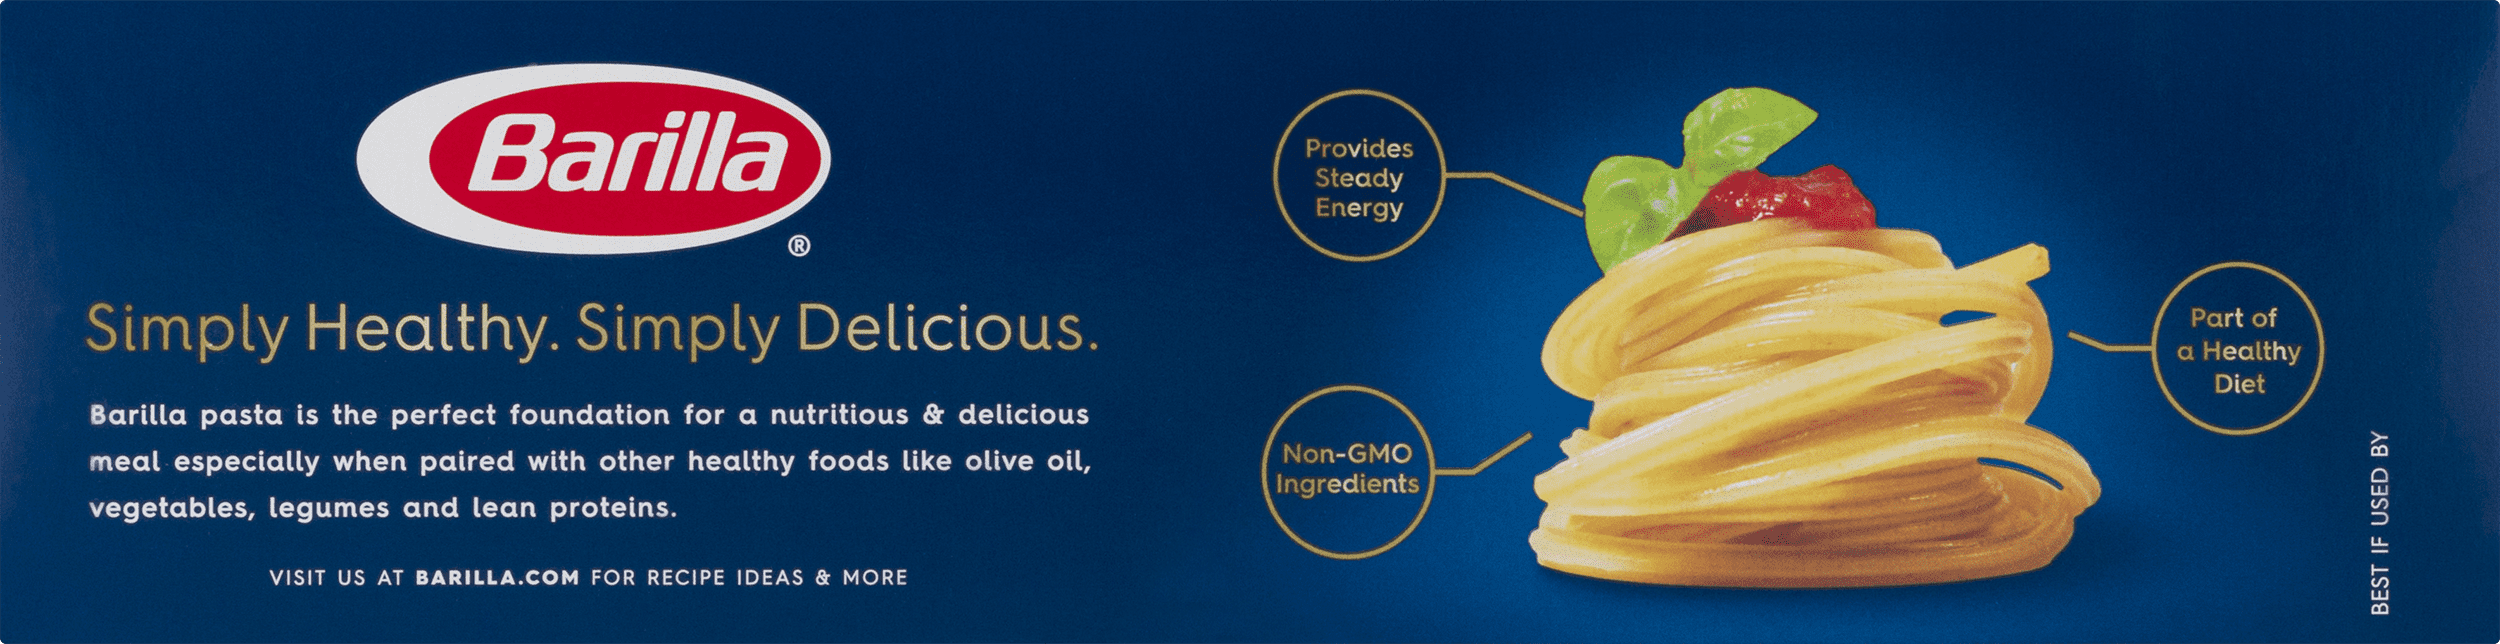 barilla spa executive summary Case study barilla spa barilla spa(a) executive summary barilla is a family owned, world's largest pasta manufacturer founded in 1875 by pietro barilla in.